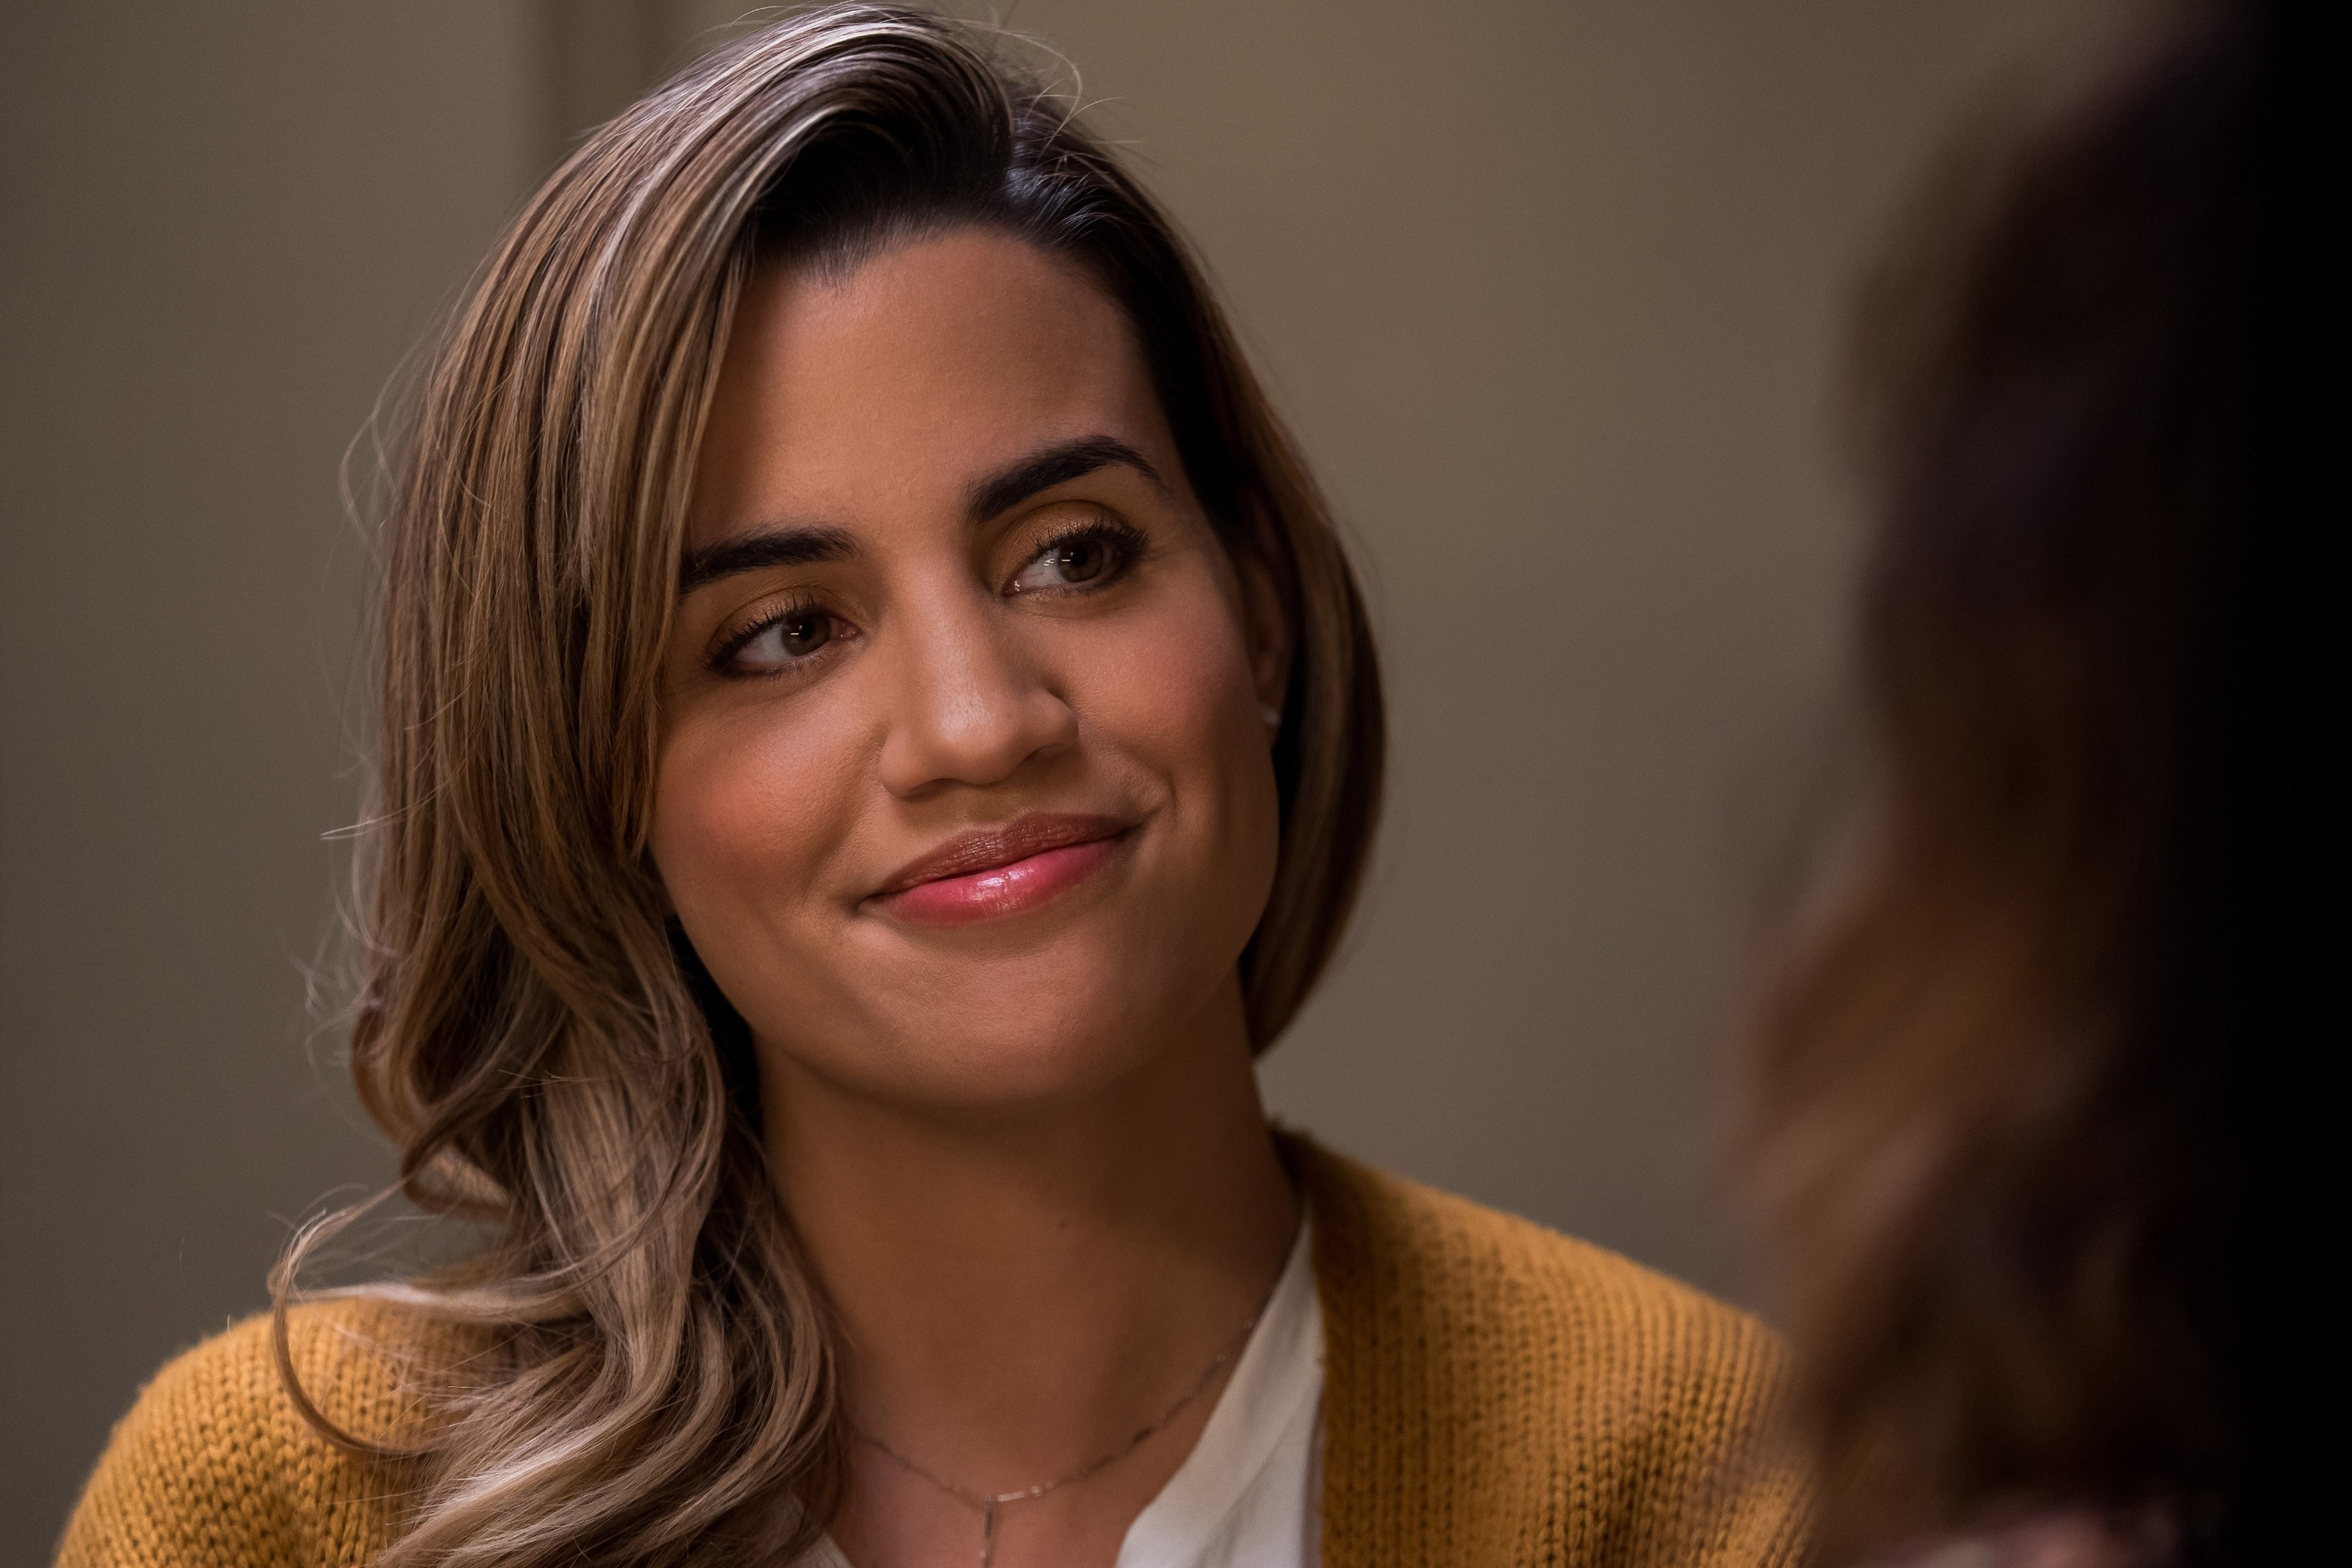 Natalie Morales on the set of Dead to Me